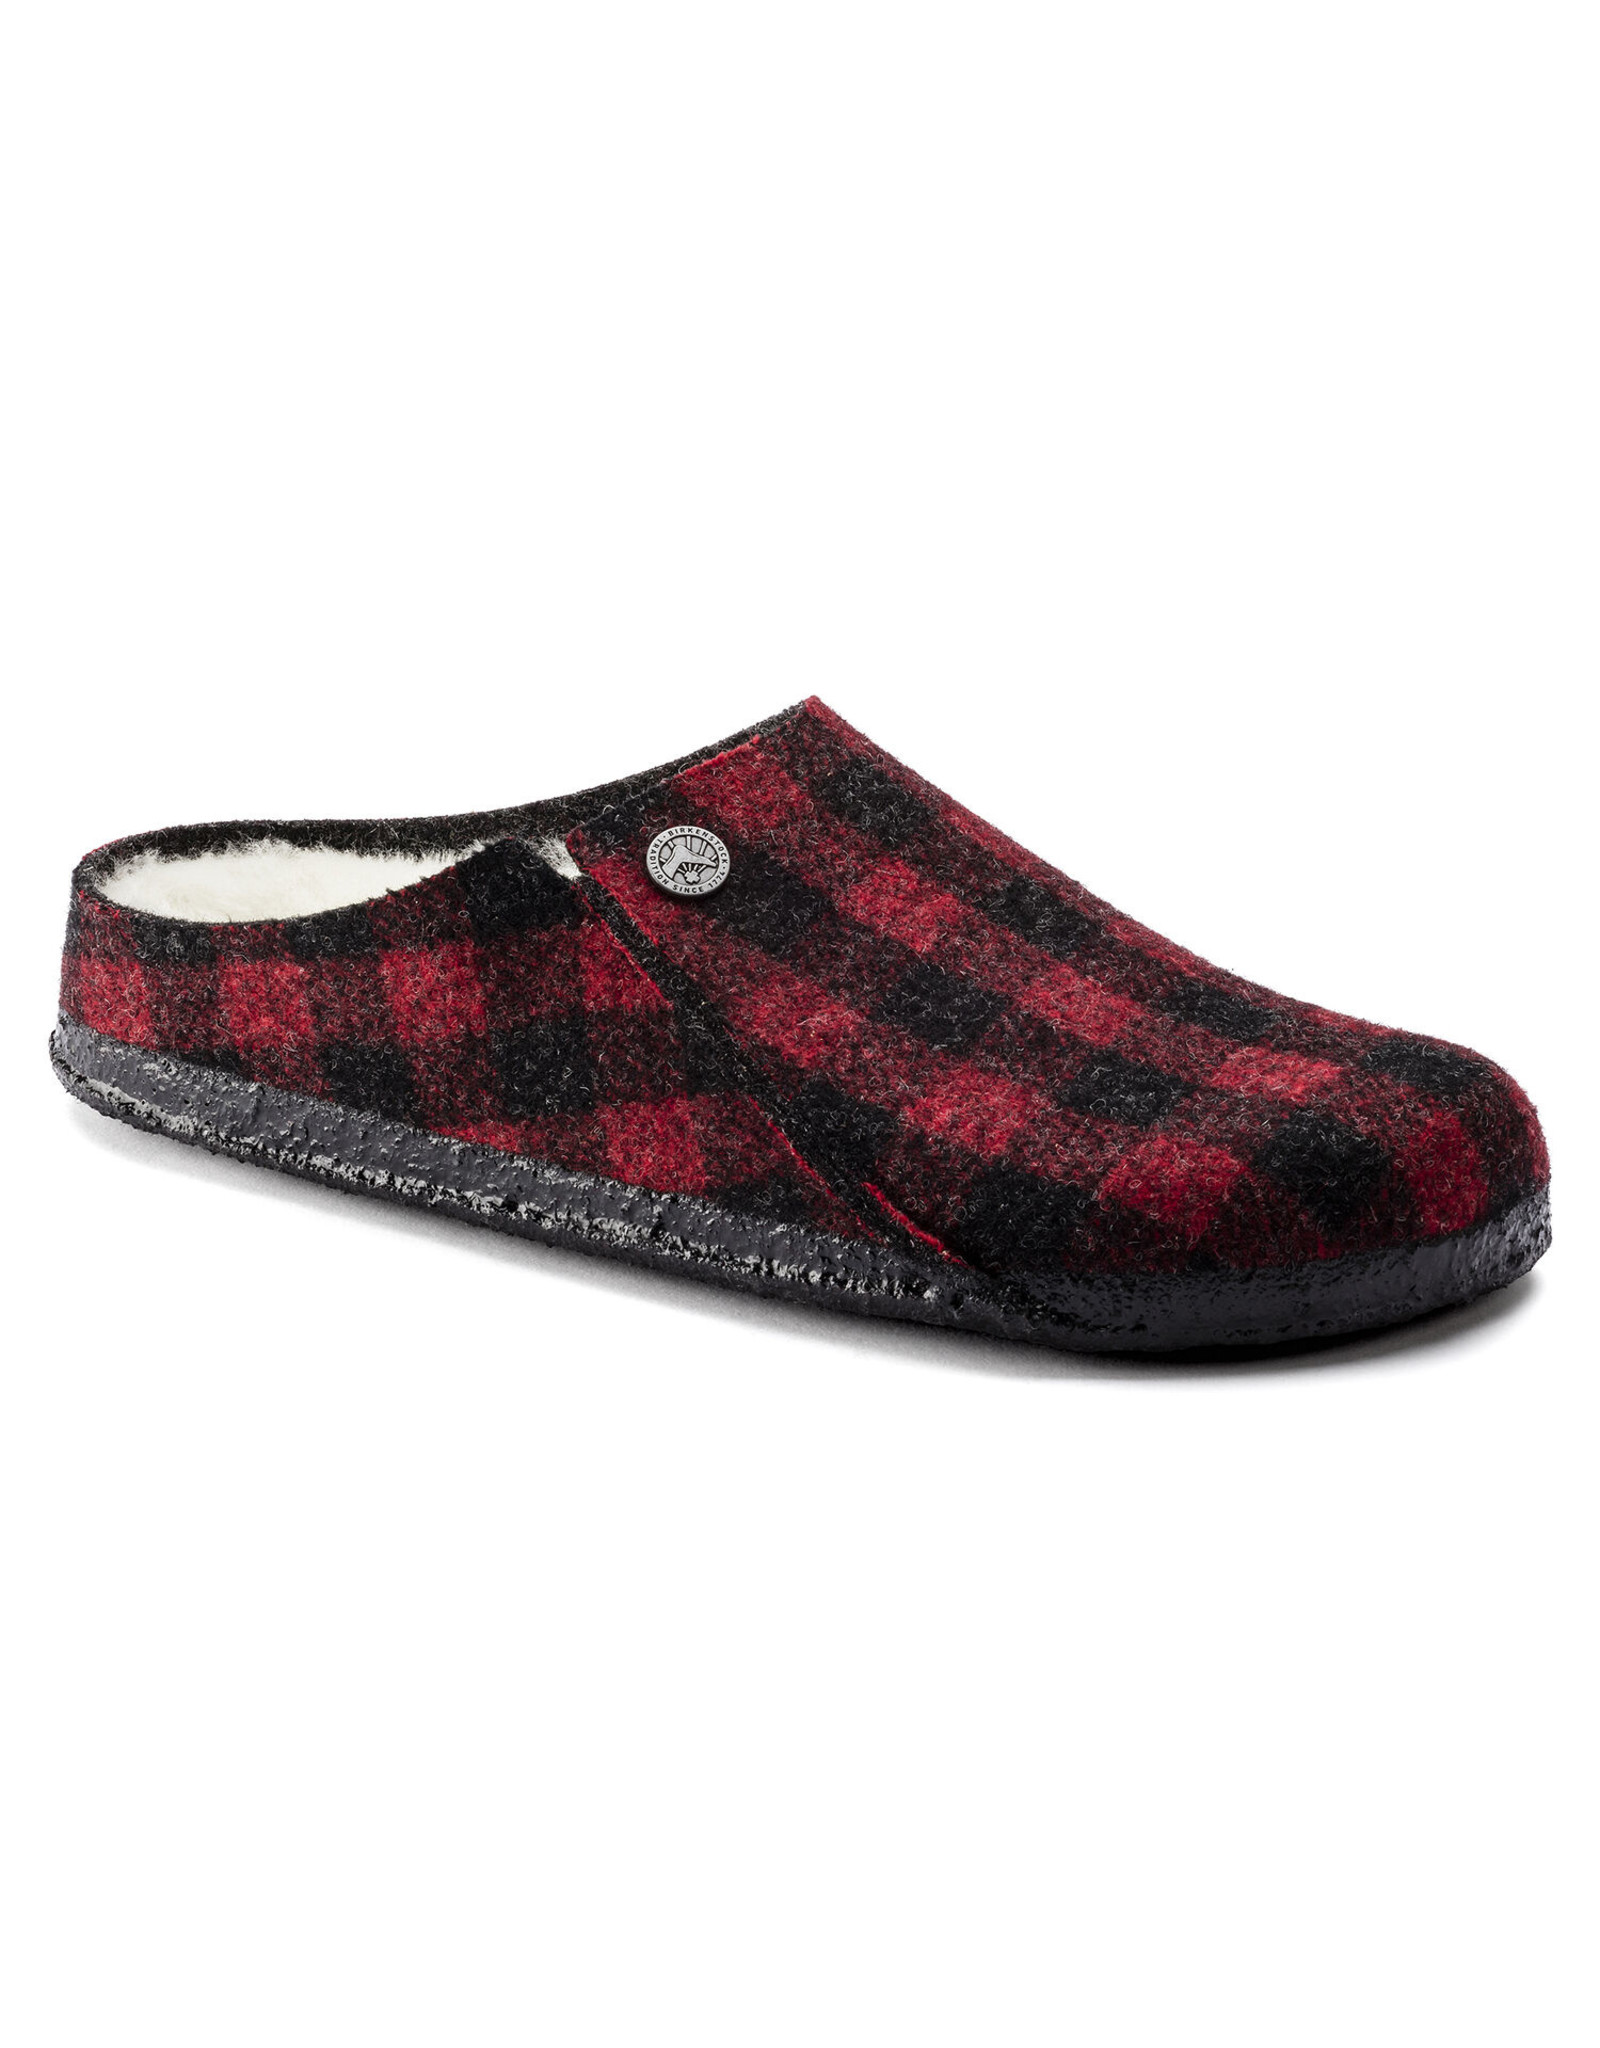 BIRKENSTOCK ZERMATT SHEARLING WOOL-PLAID RED